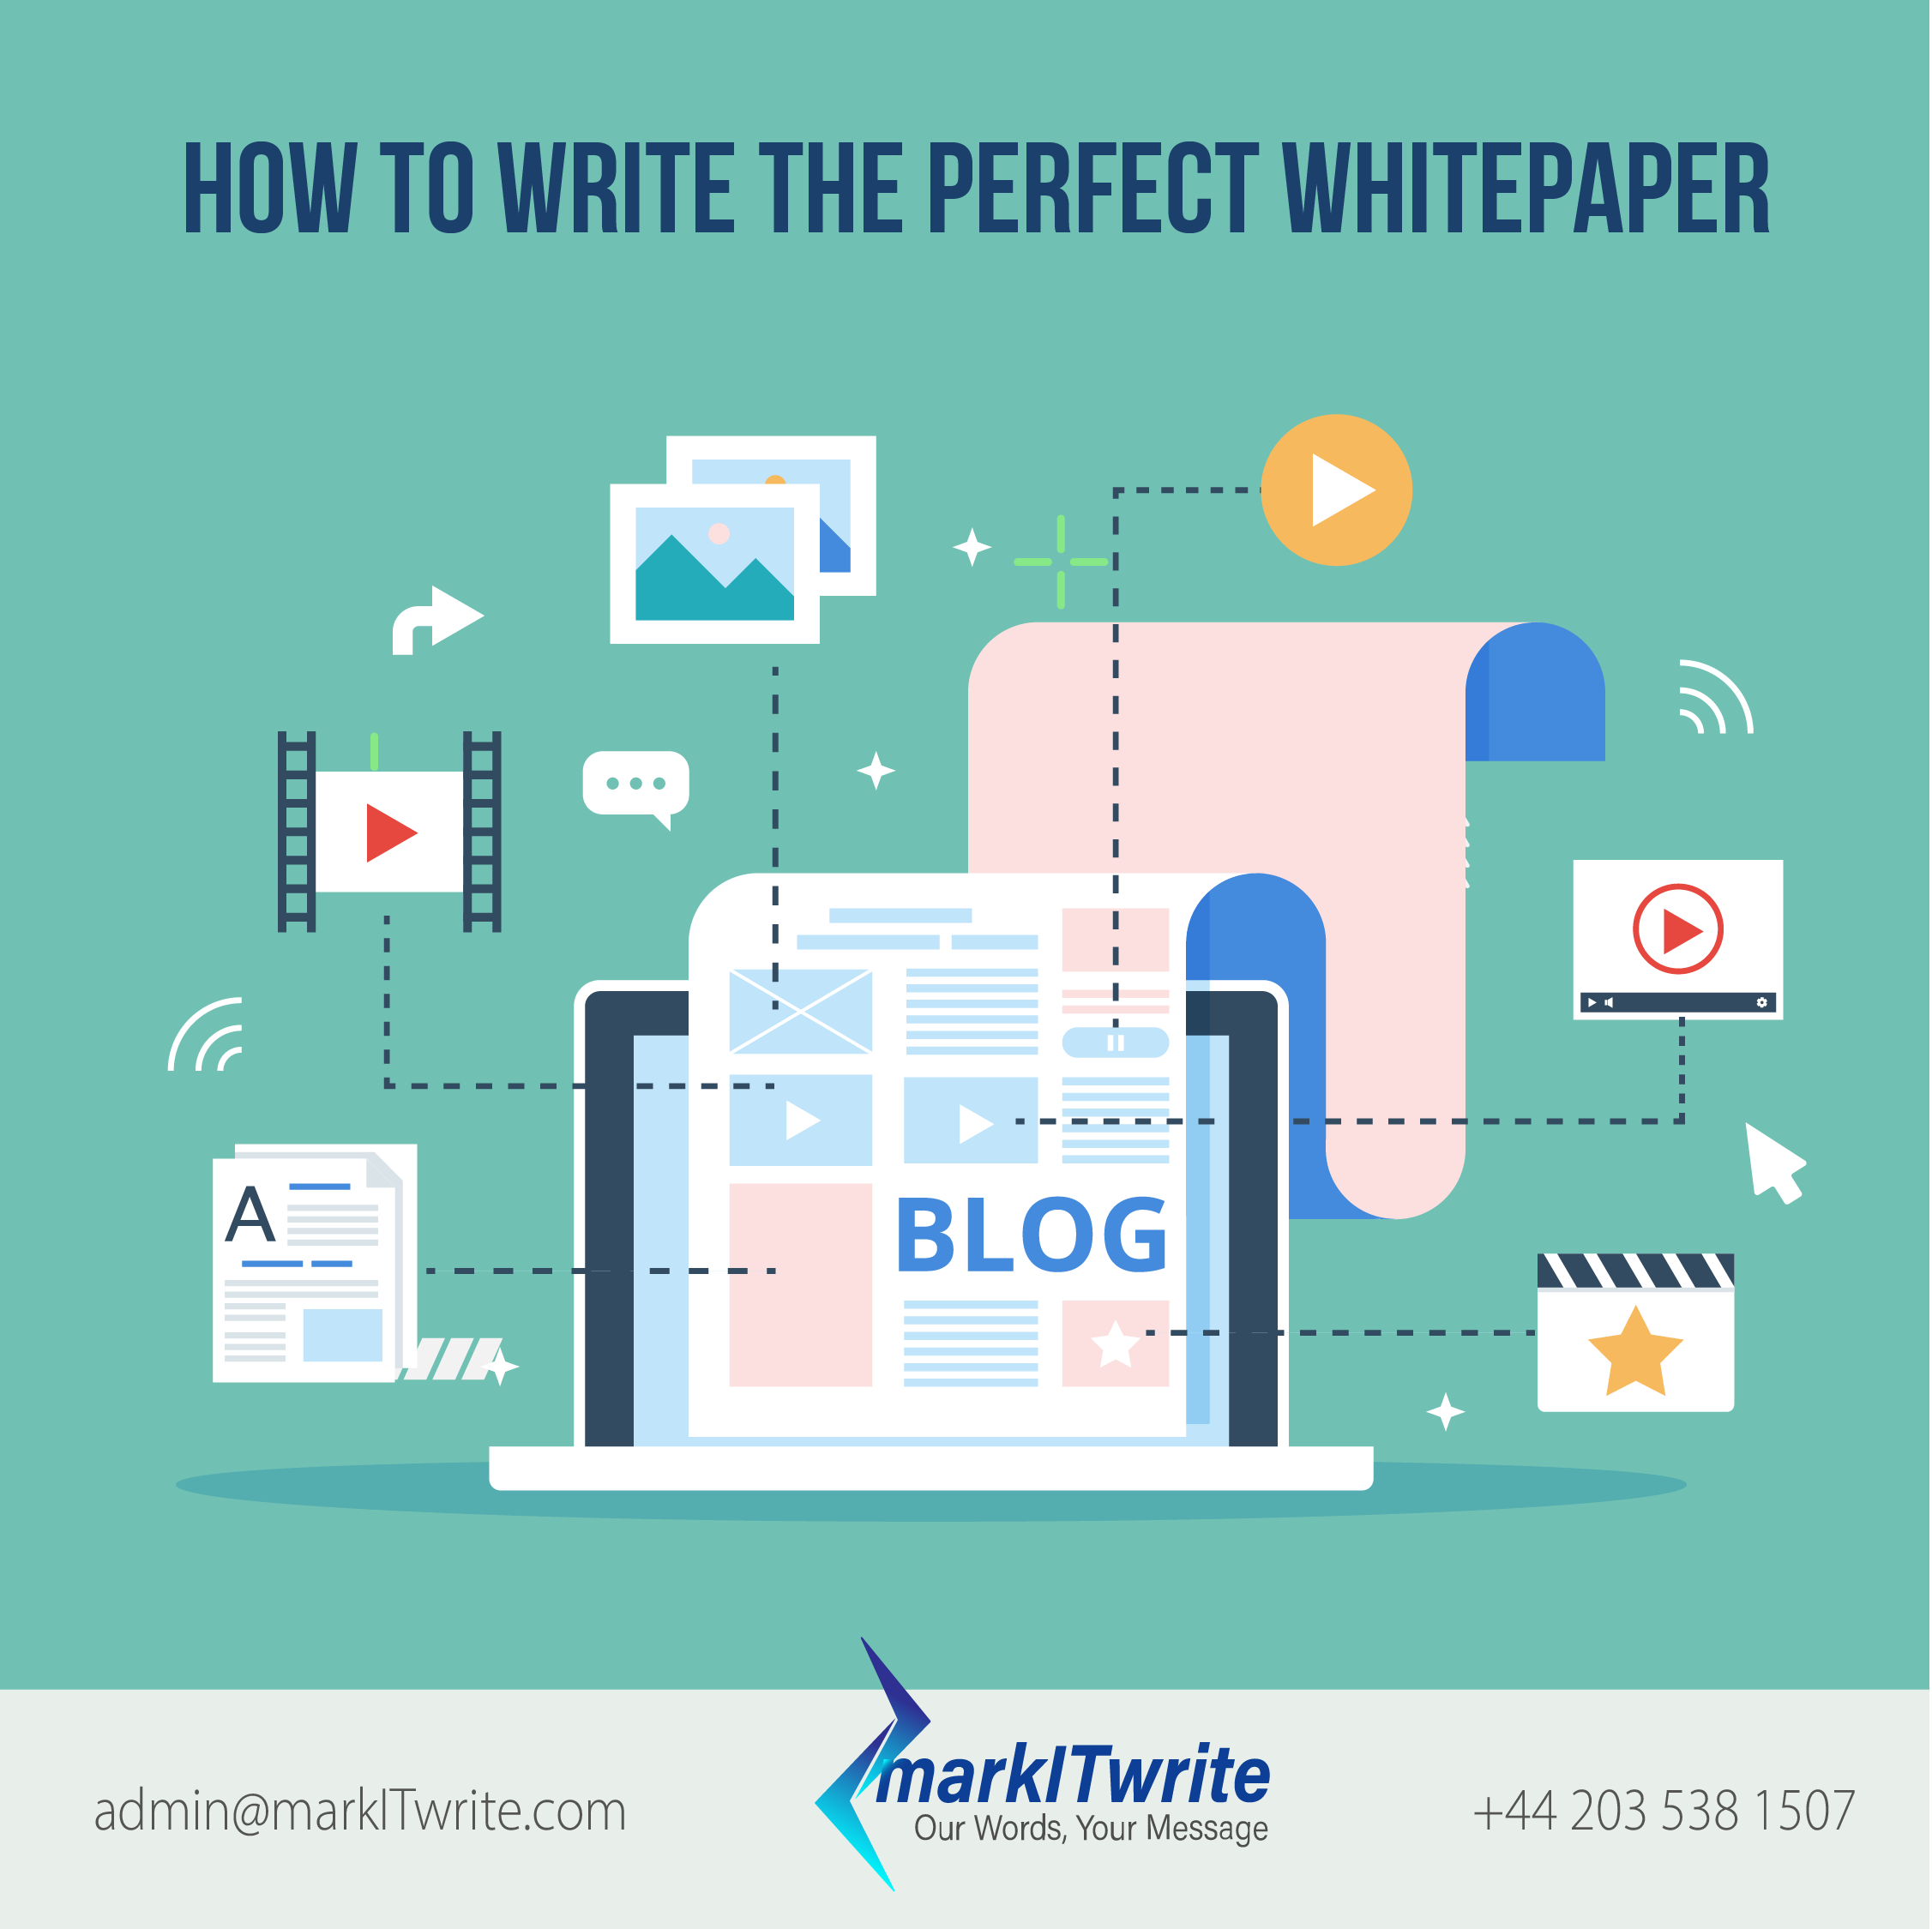 How To Write The Perfect Whitepaper